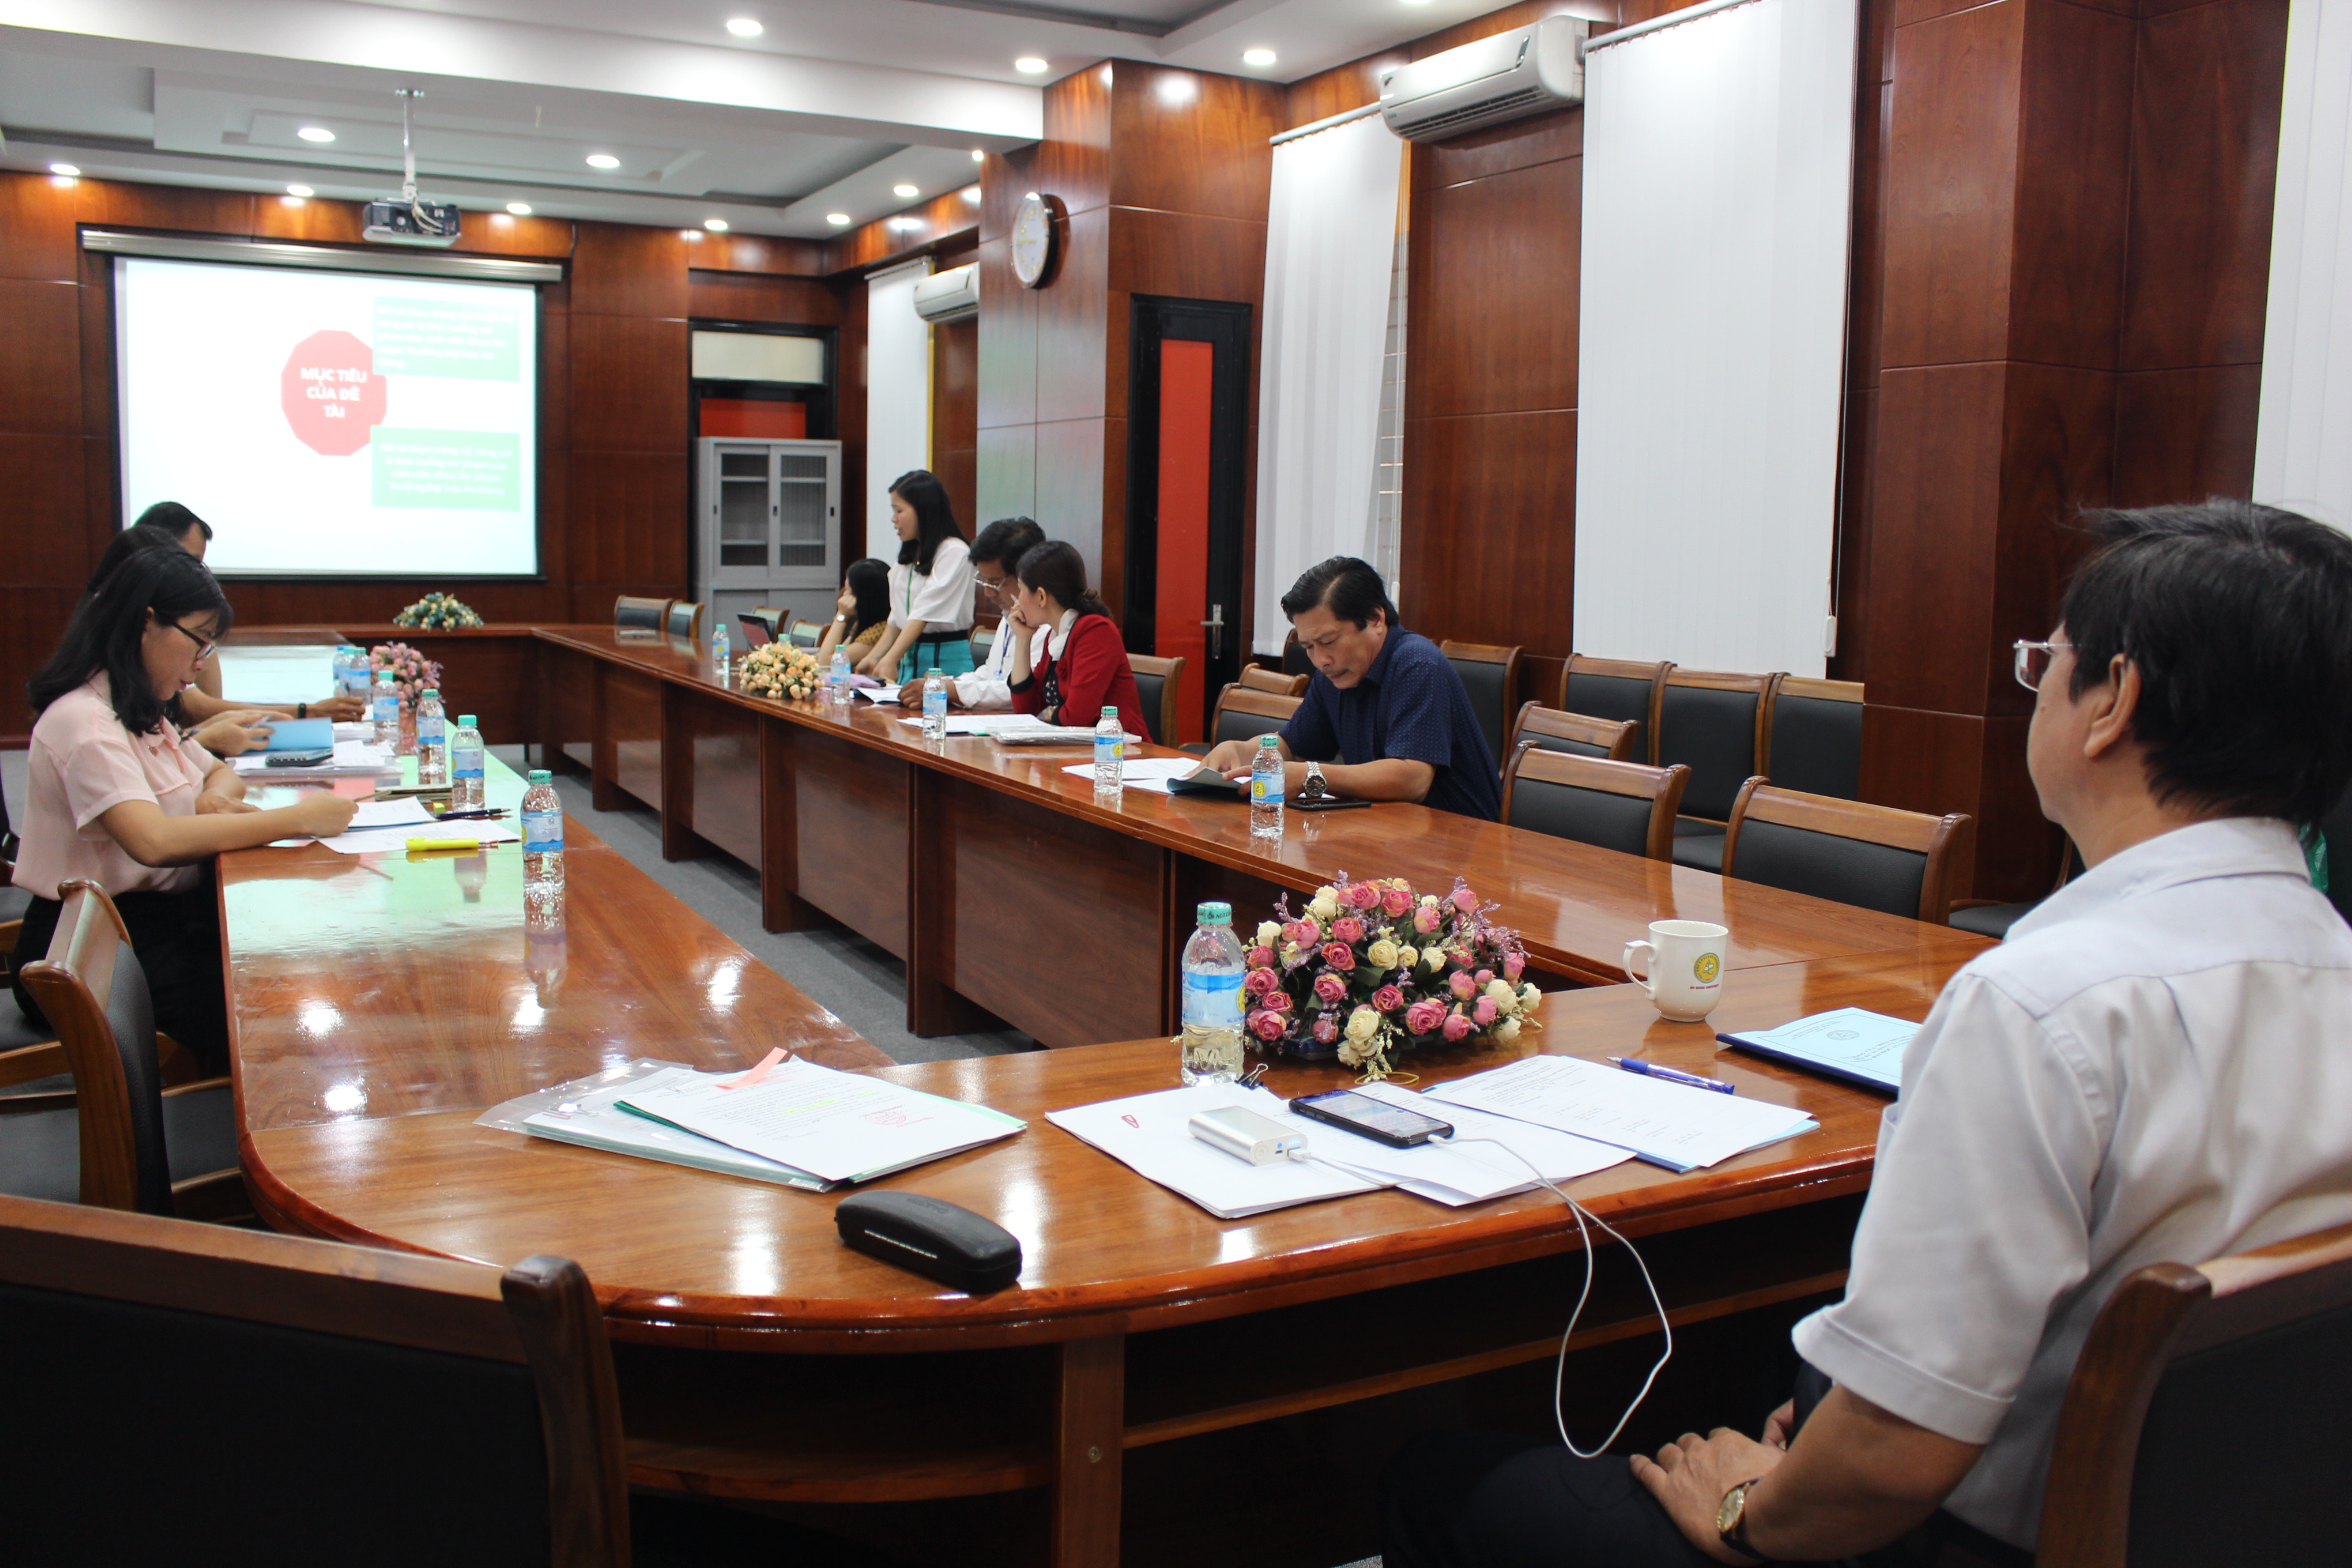 The evaluation session of project proposal of Ms. Tran Thi Huyen (project leader)